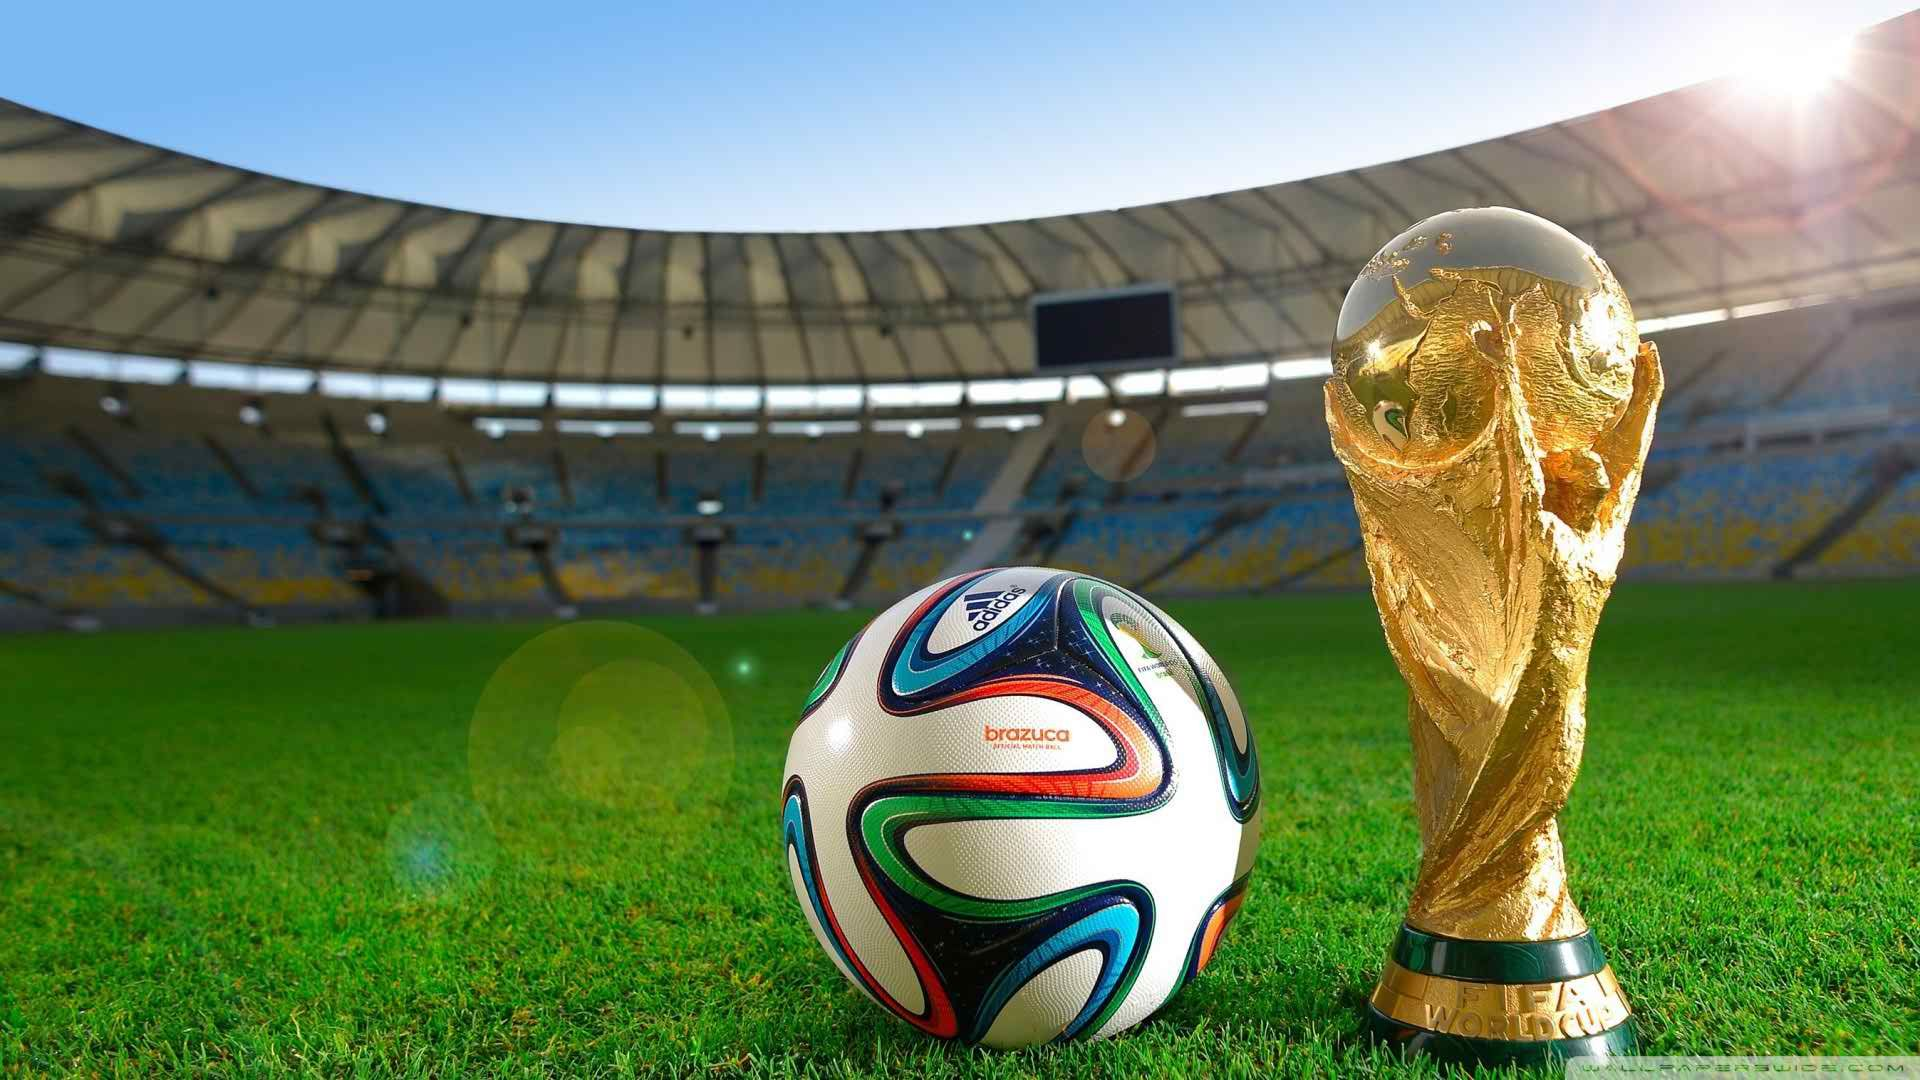 2018 Fifa World Cup Full Hd Wallpaper World Cup Stadiums World Cup Tickets Fifa World Cup